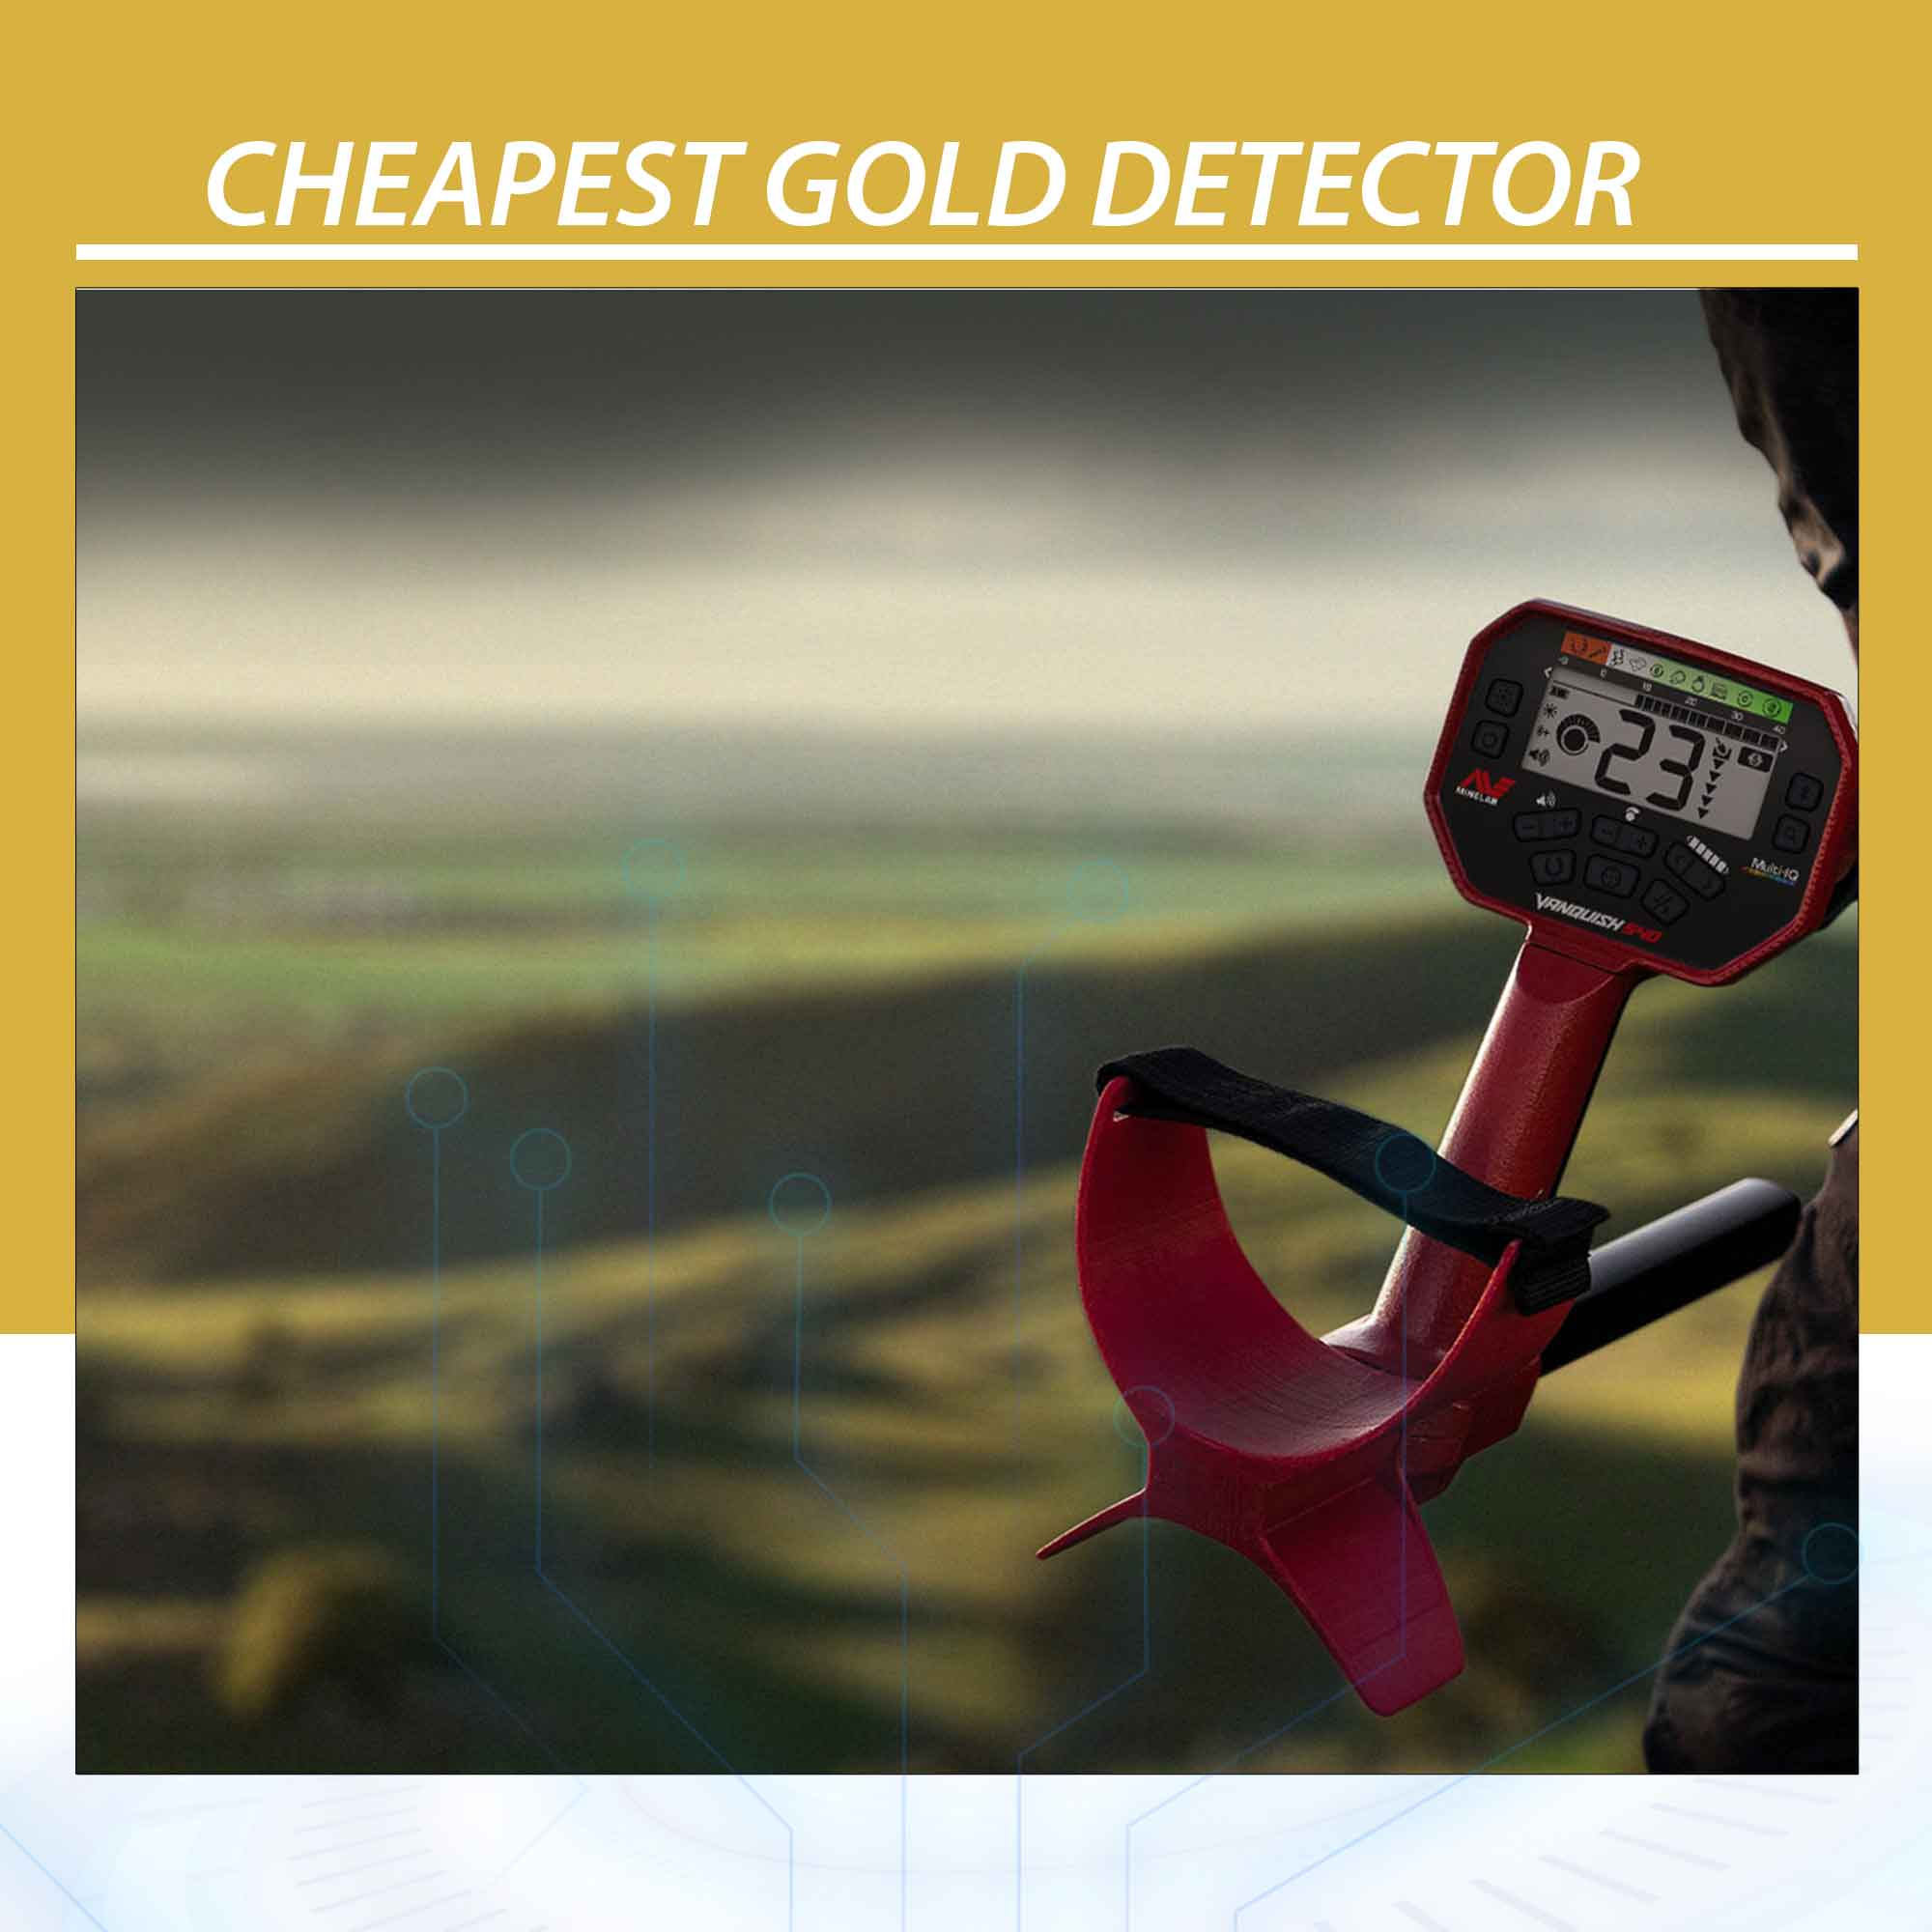 Cheapest Gold Detector